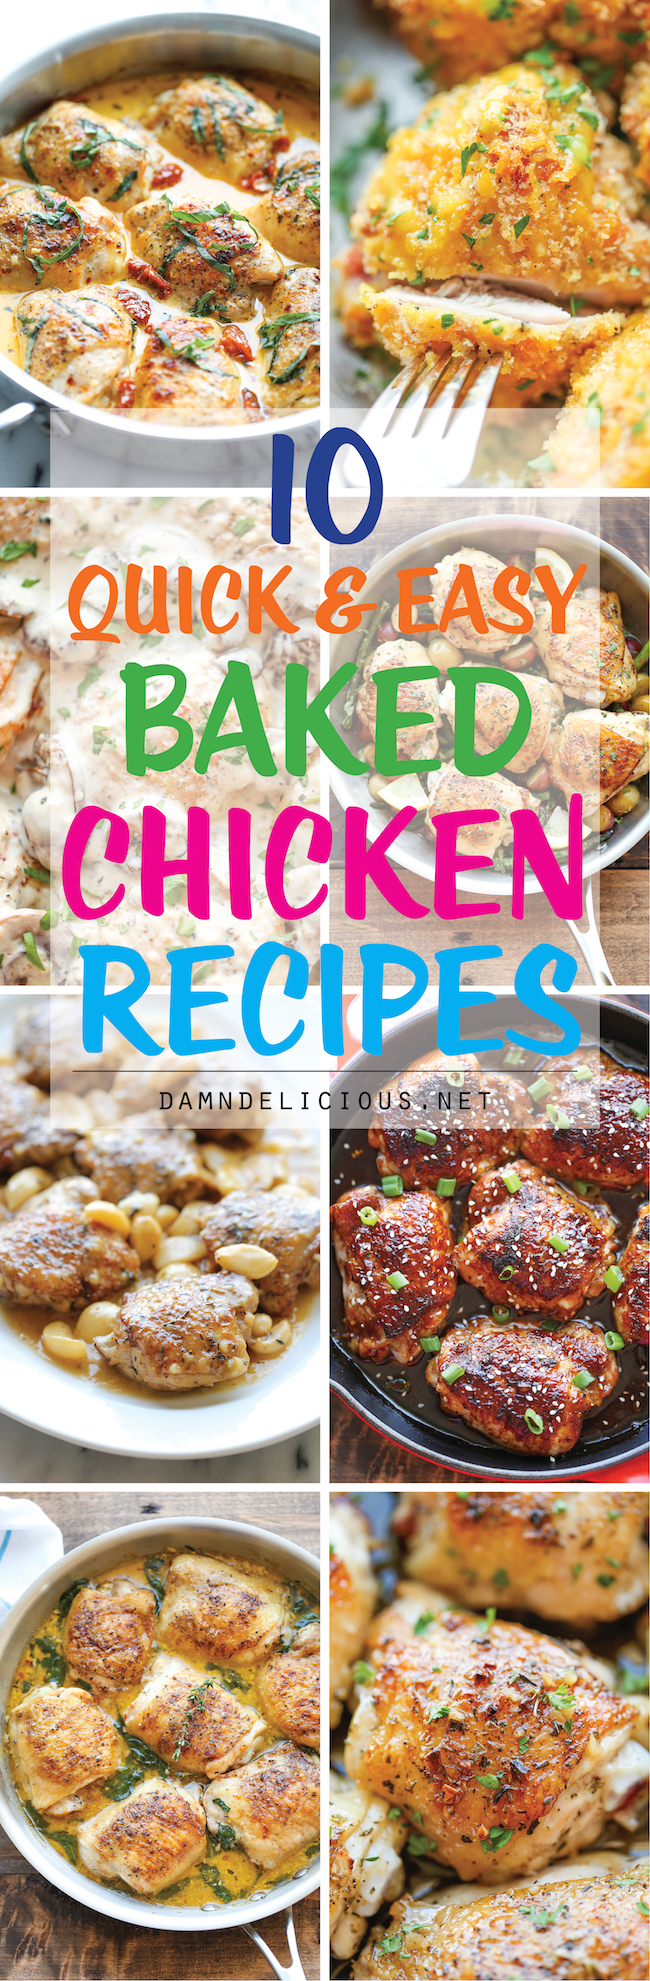 10 Quick And Easy Baked Chicken Recipes Damn Delicious